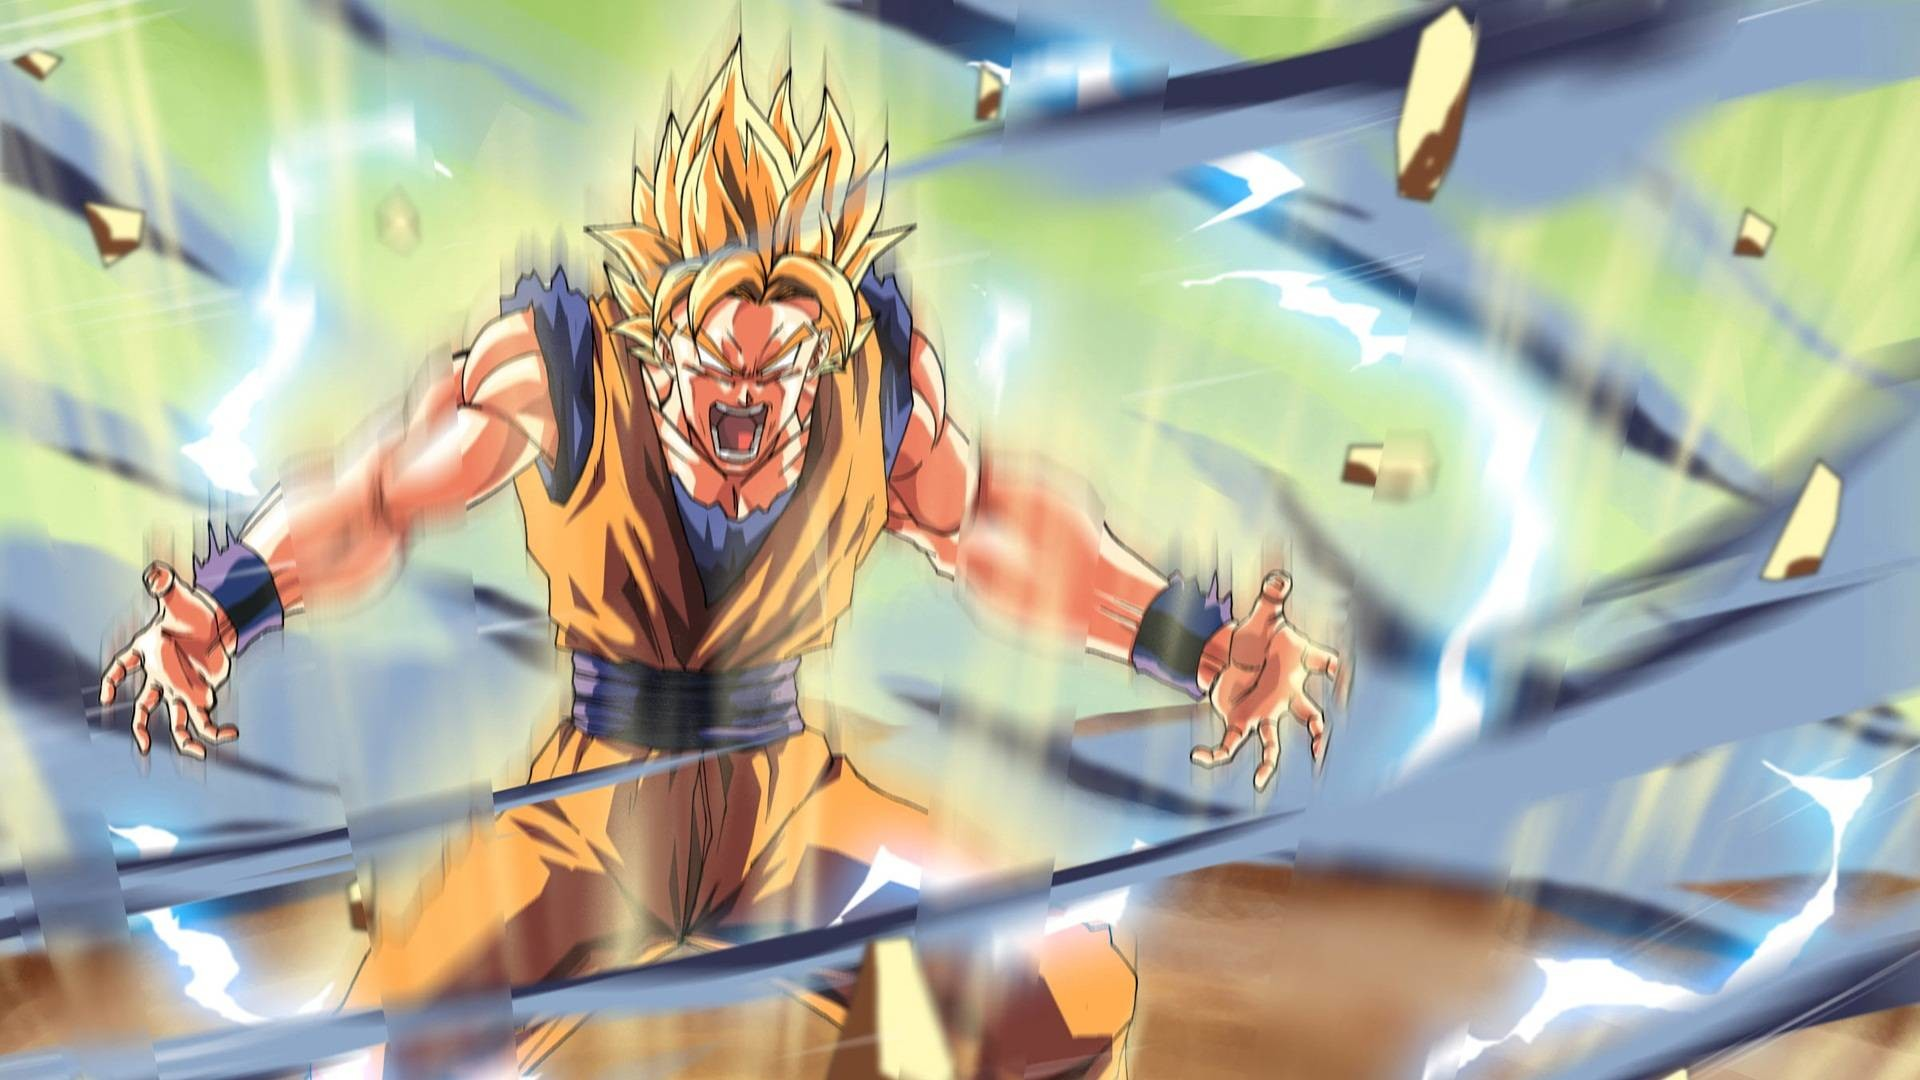 Dbz Wallpaper Goku Kamehameha Dragon Ball Z Theme Dragon Ball Z 1920x1080 Download Hd Wallpaper Wallpapertip